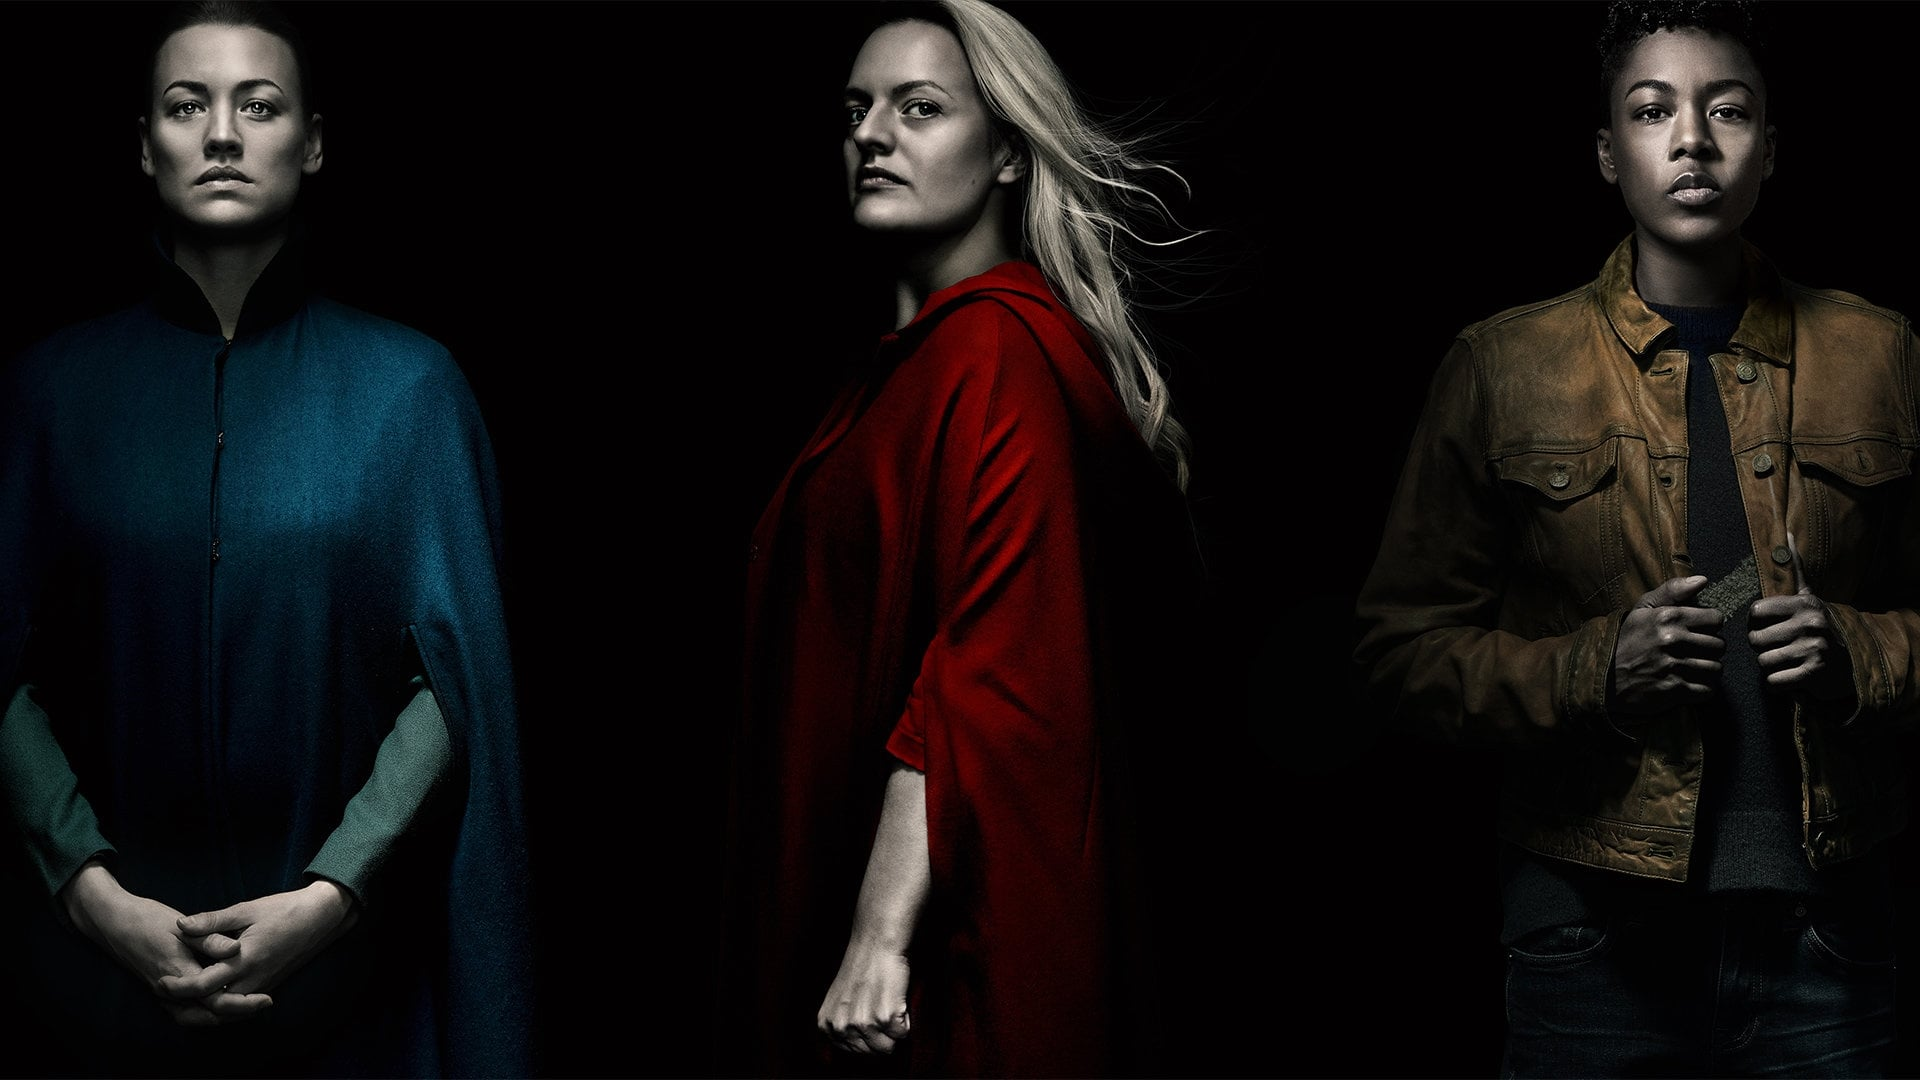 Fourth season The Handmaid's Tale to premiere near the end of April